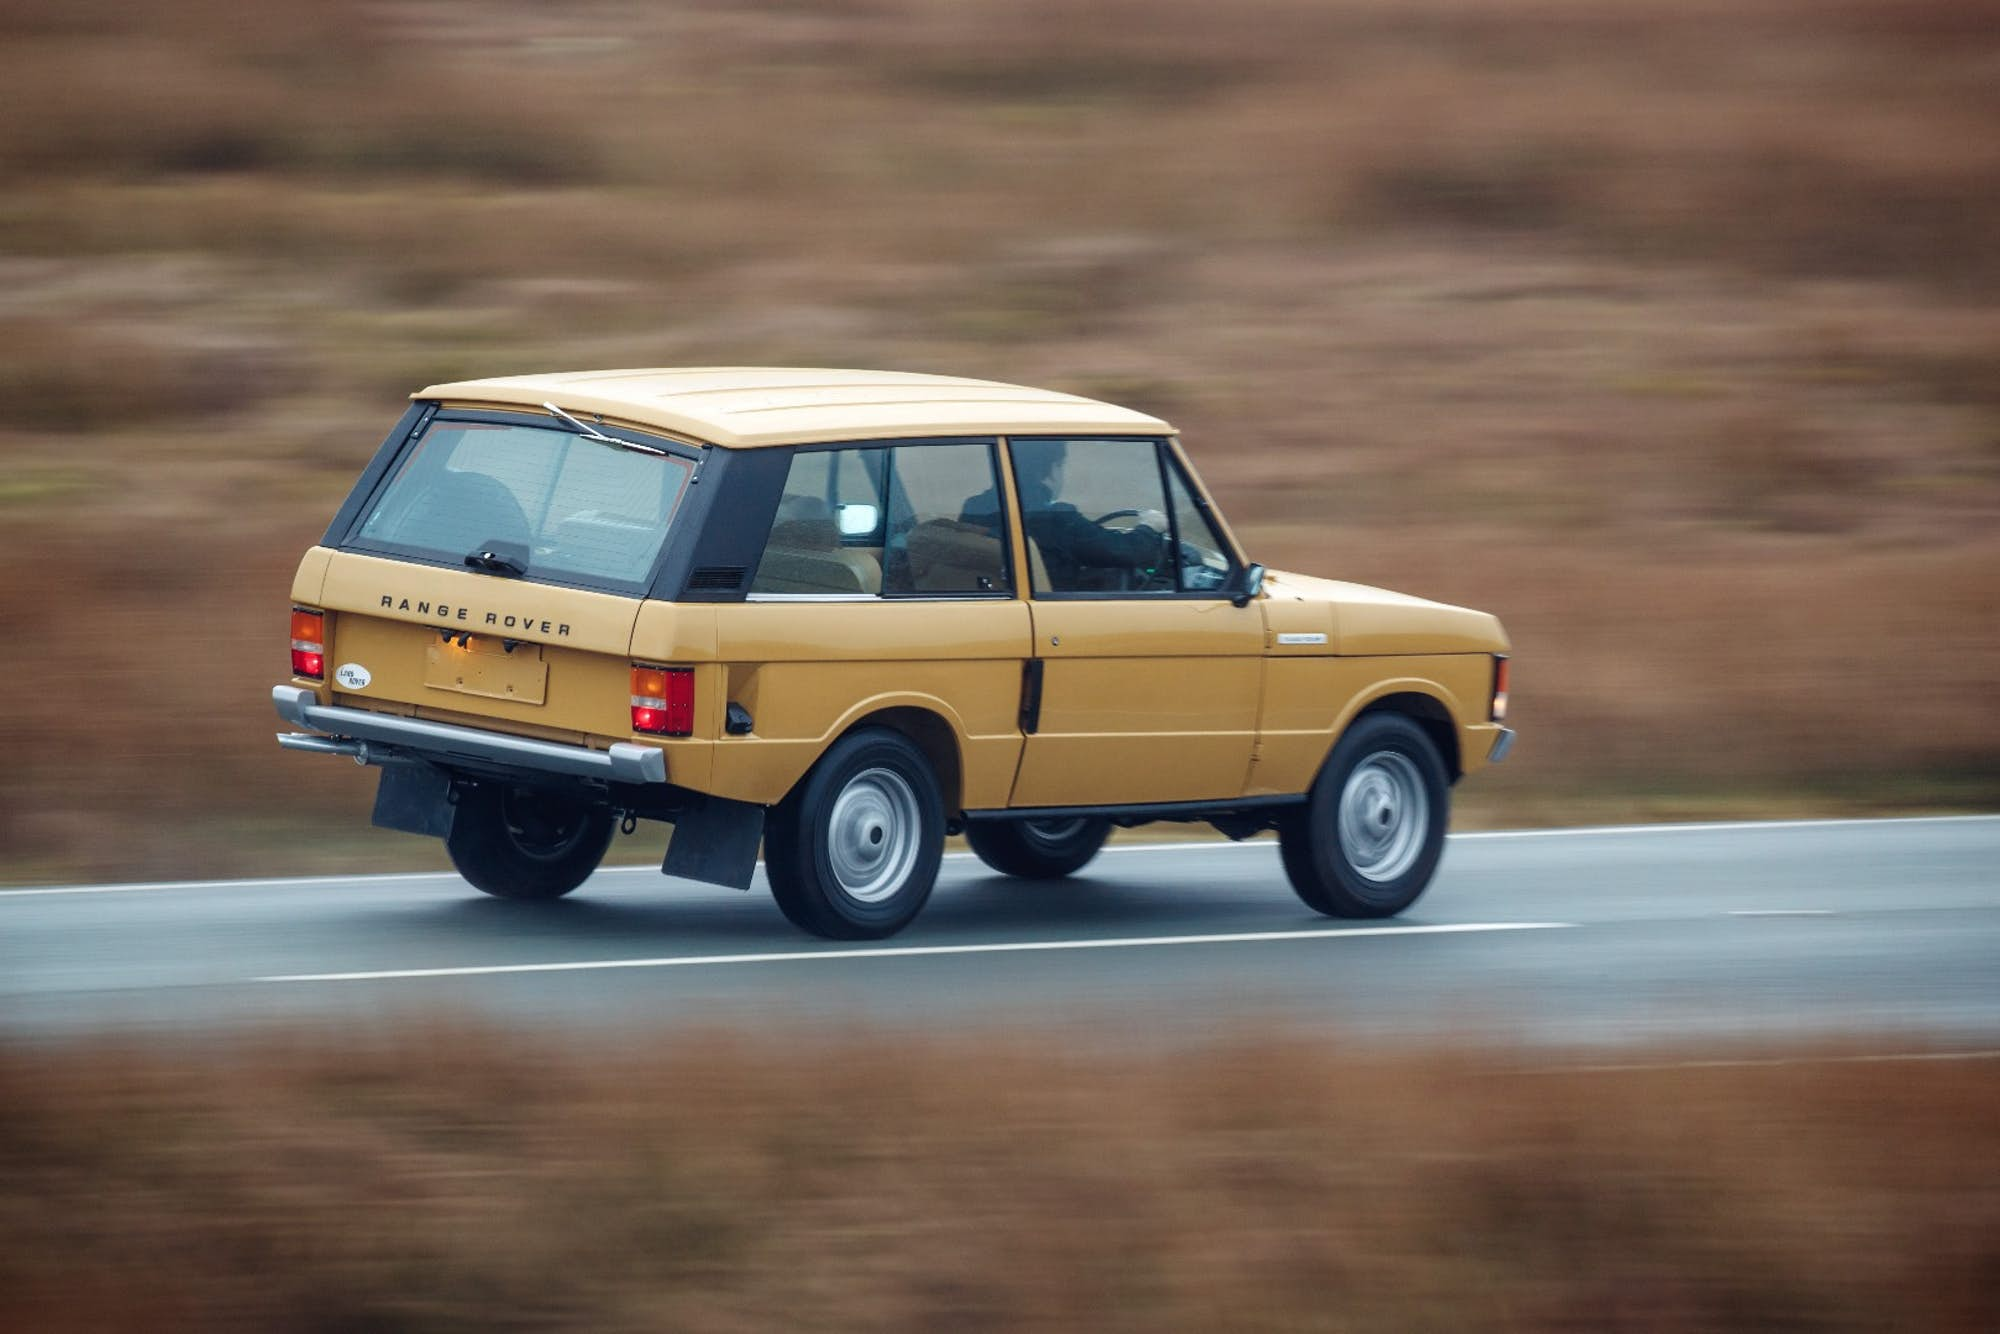 You Can Own This Beautifully Restored 1978 Range Rover for